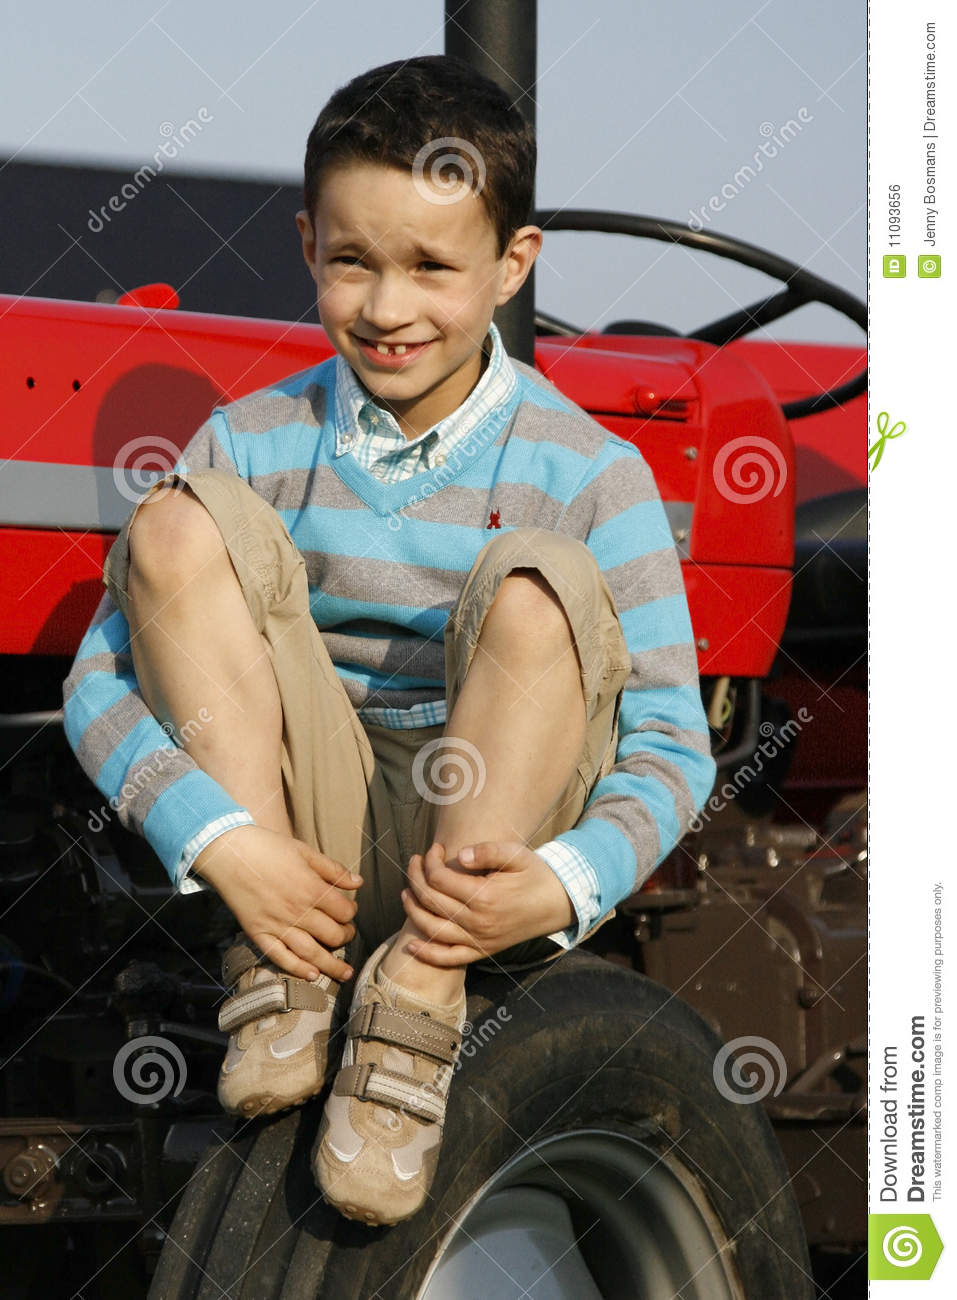 Boy On Tractor : Boy on tractor royalty free stock image